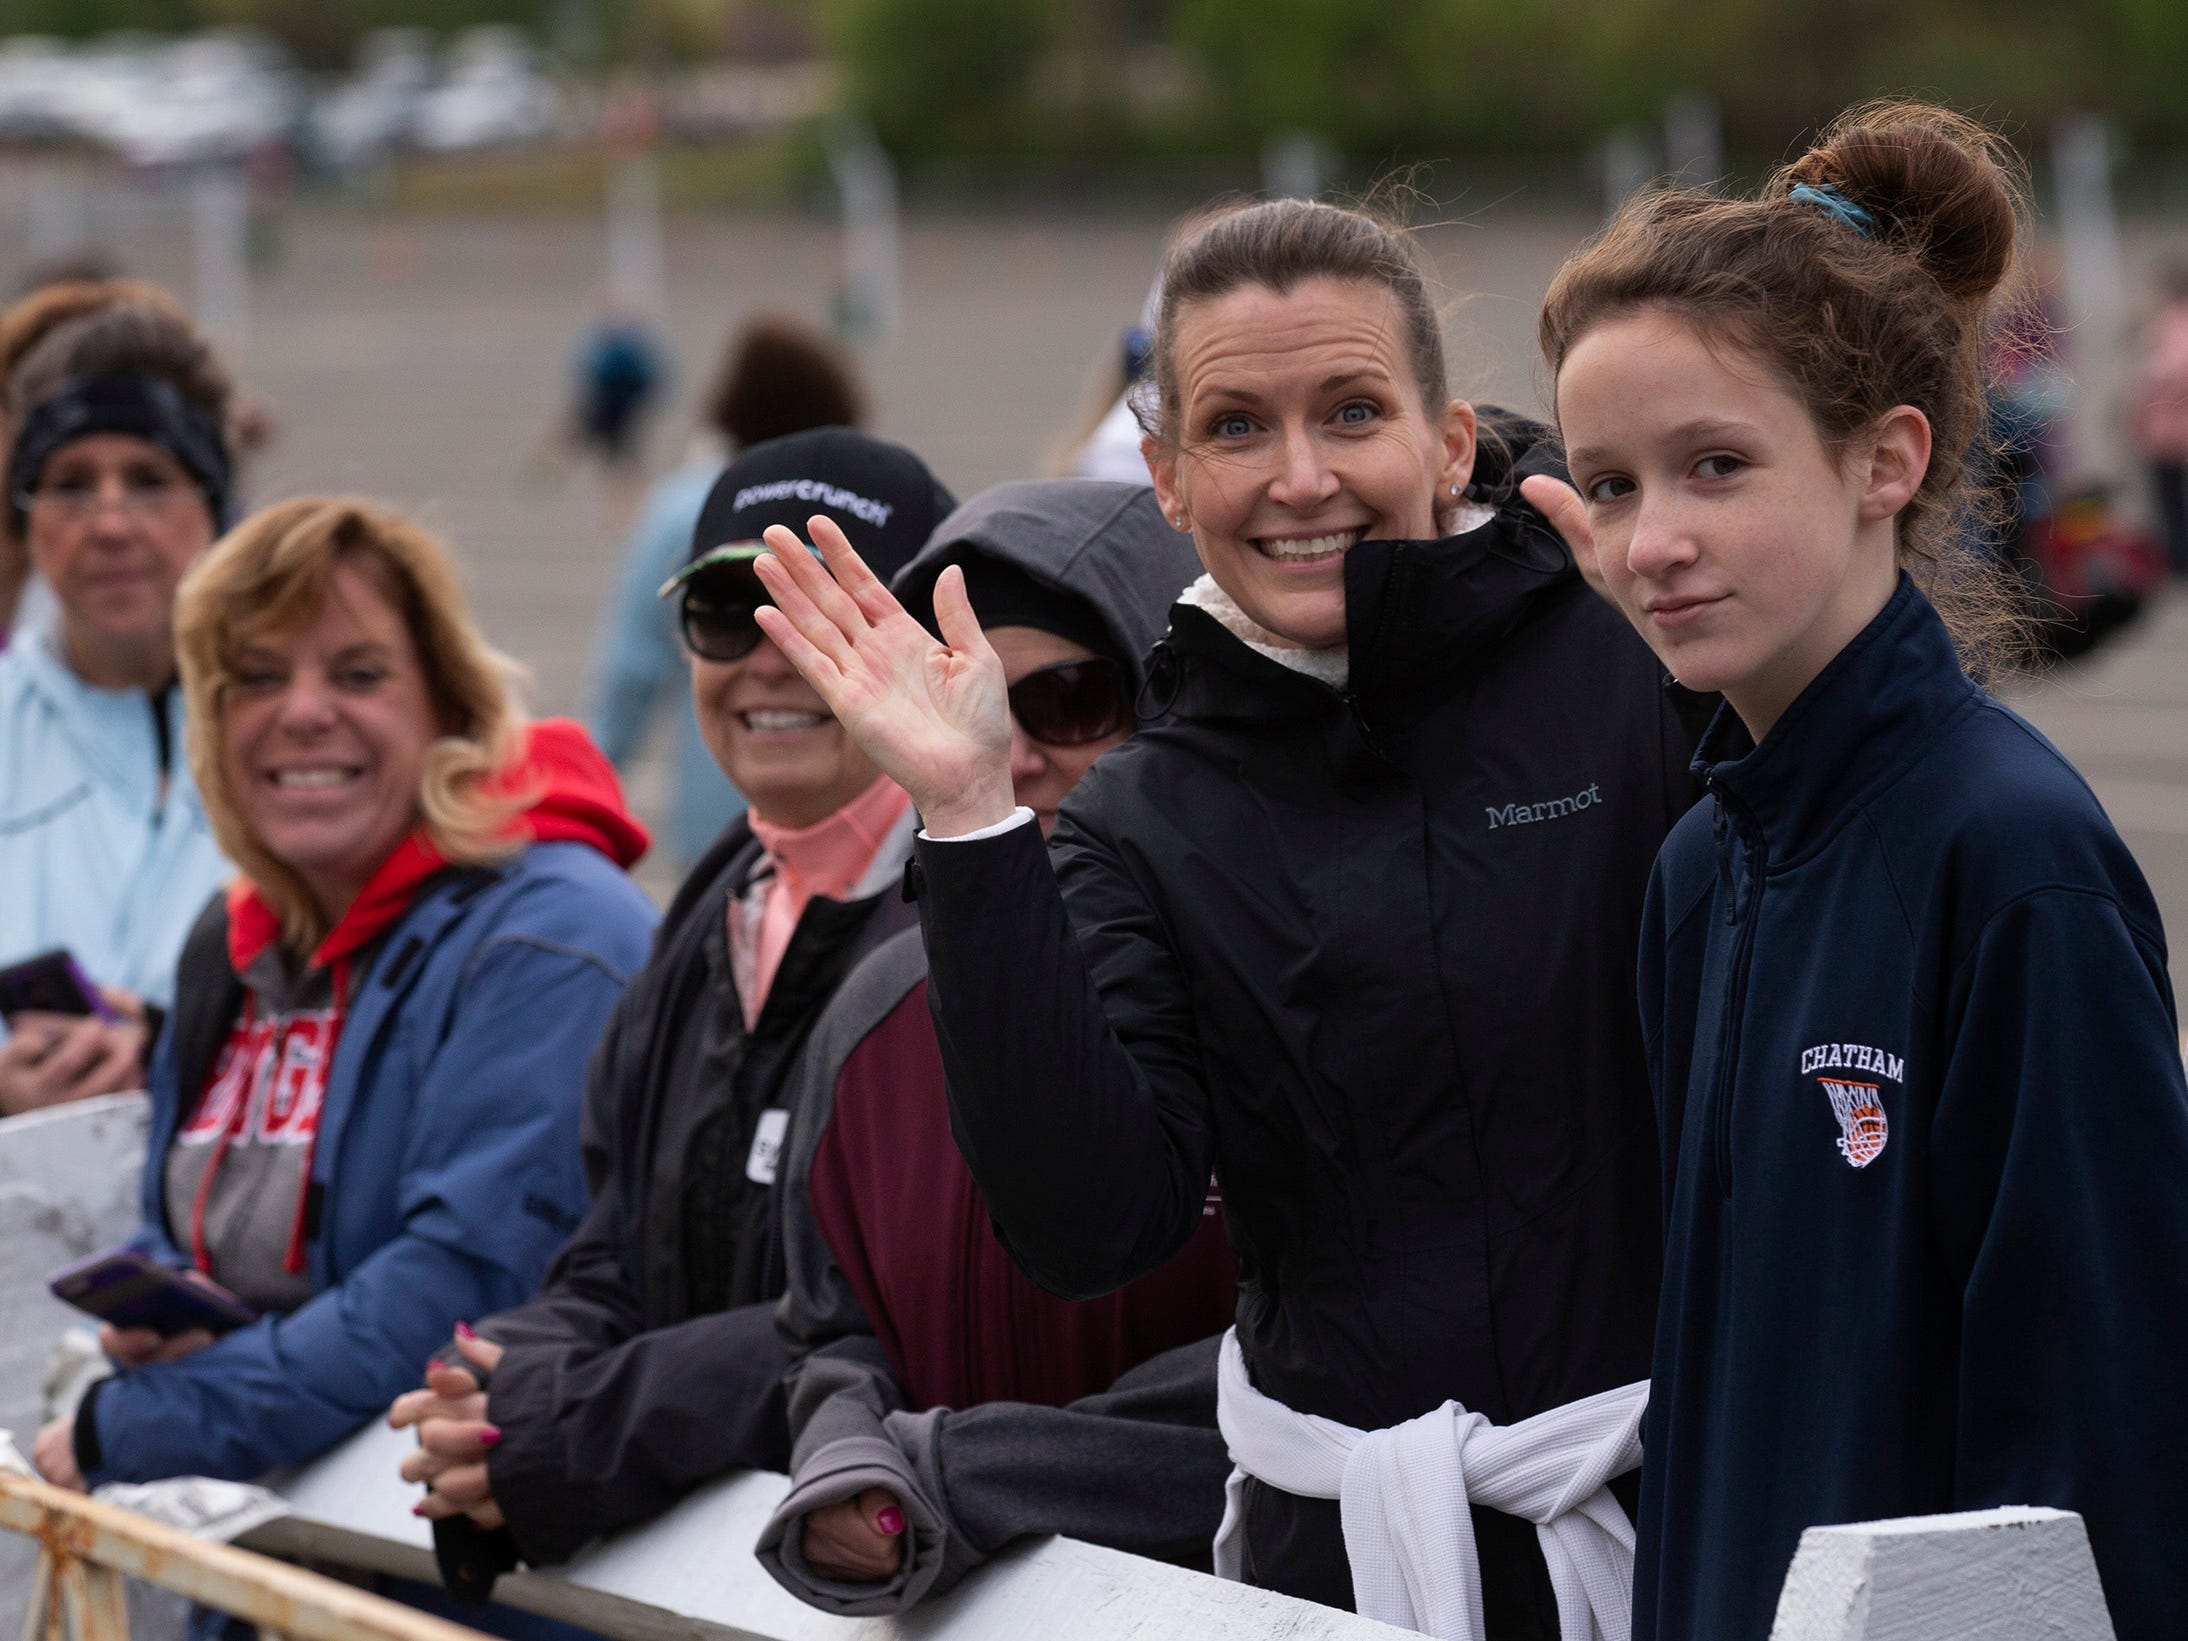 Family and friends wait for the start of the days races at Monmouth Park. 2019 Novo Nordisk New Jersey Marathon and Half Marathon which started at Monmouth Park in Oceanport and ended at Ocean Promenade in Long Branch.